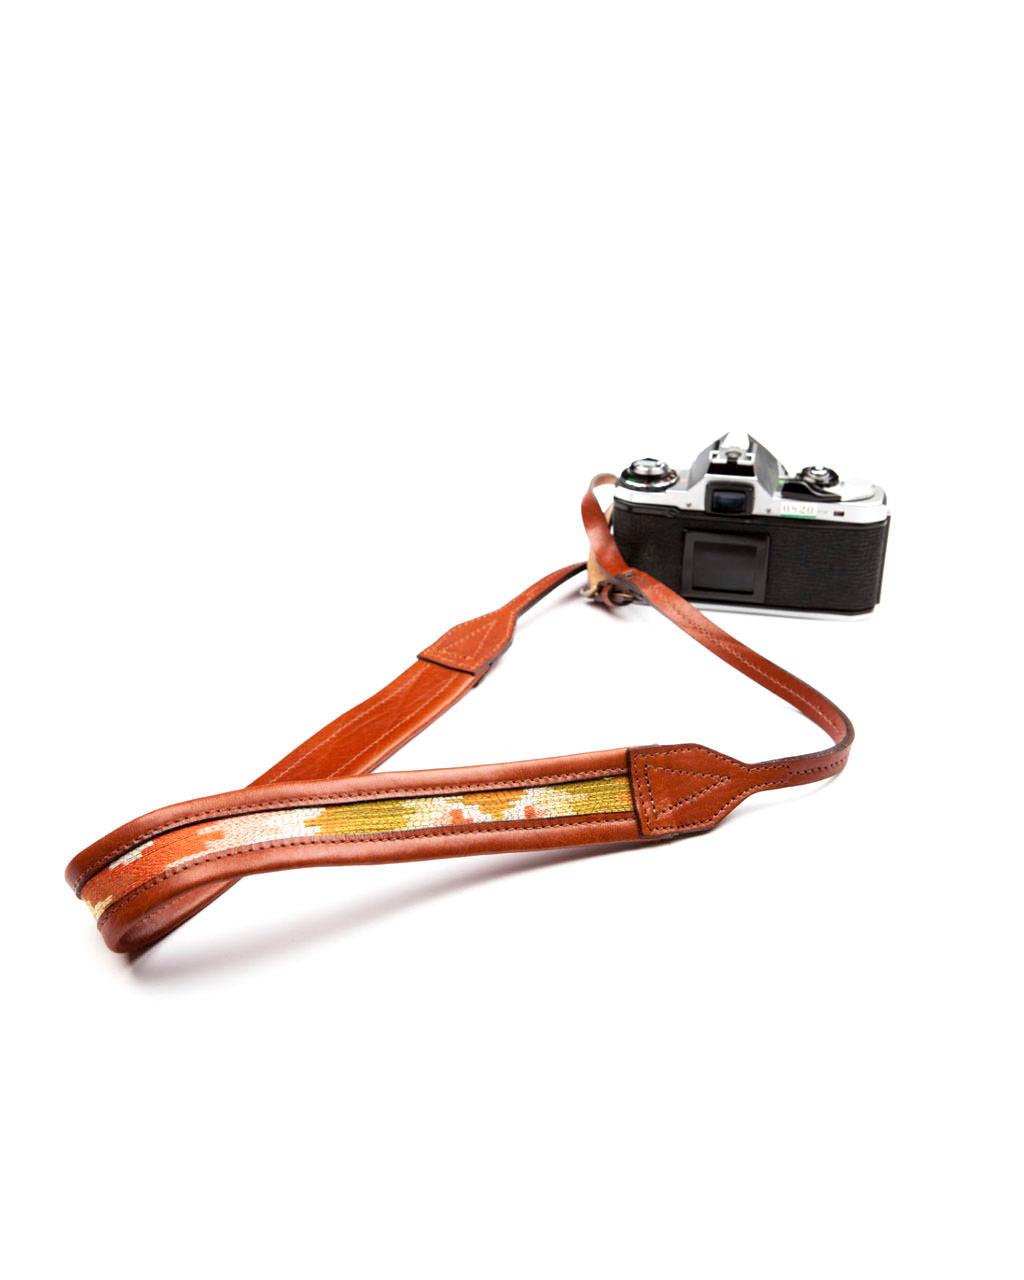 Camera with leather camera strap sitting on table